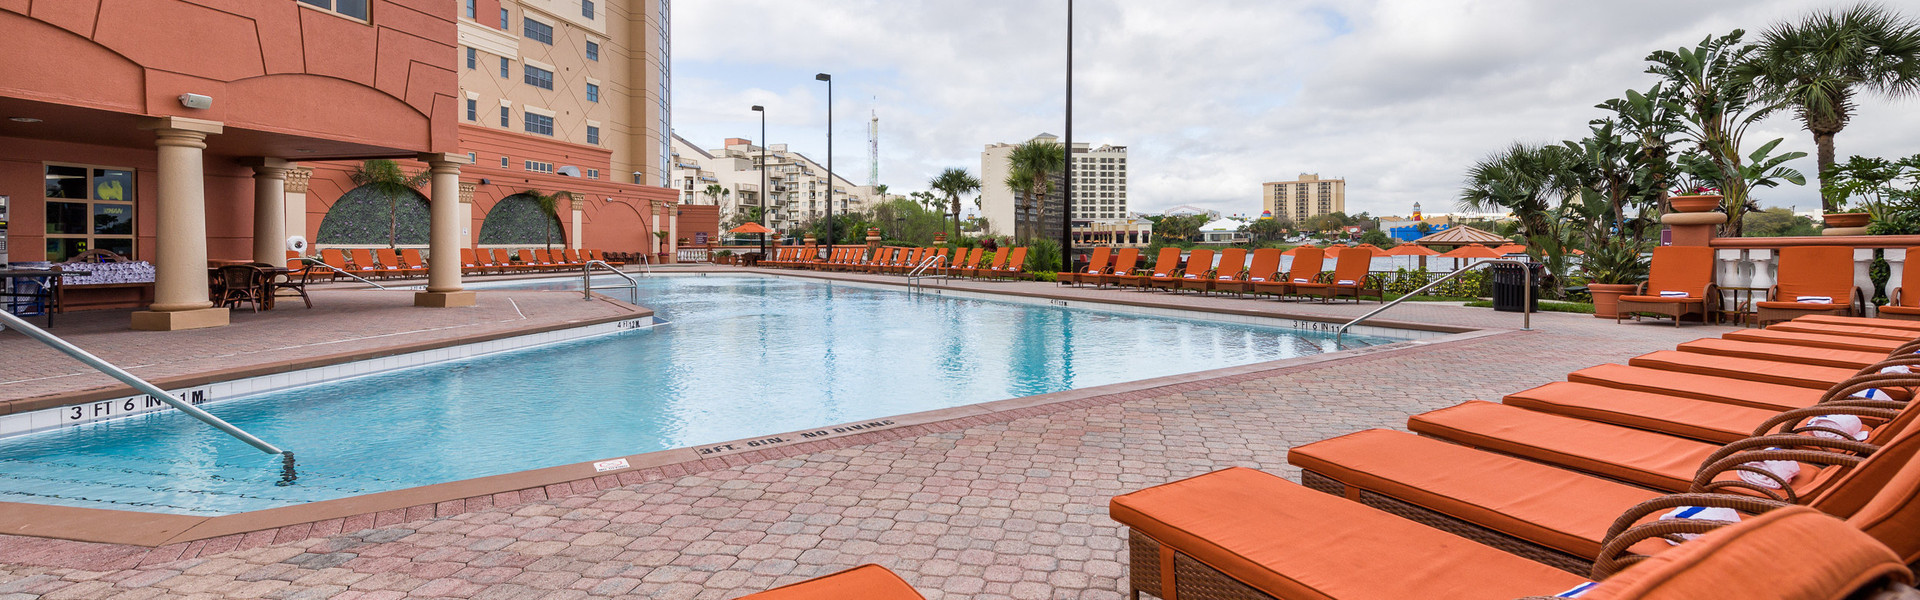 Take a tour of your Westgate Palace Resort Orlando villa before you arrive! Have a look inside the different rooms and vacation villas available with a 360-degree virtual tour at our Orlando villa resorts!